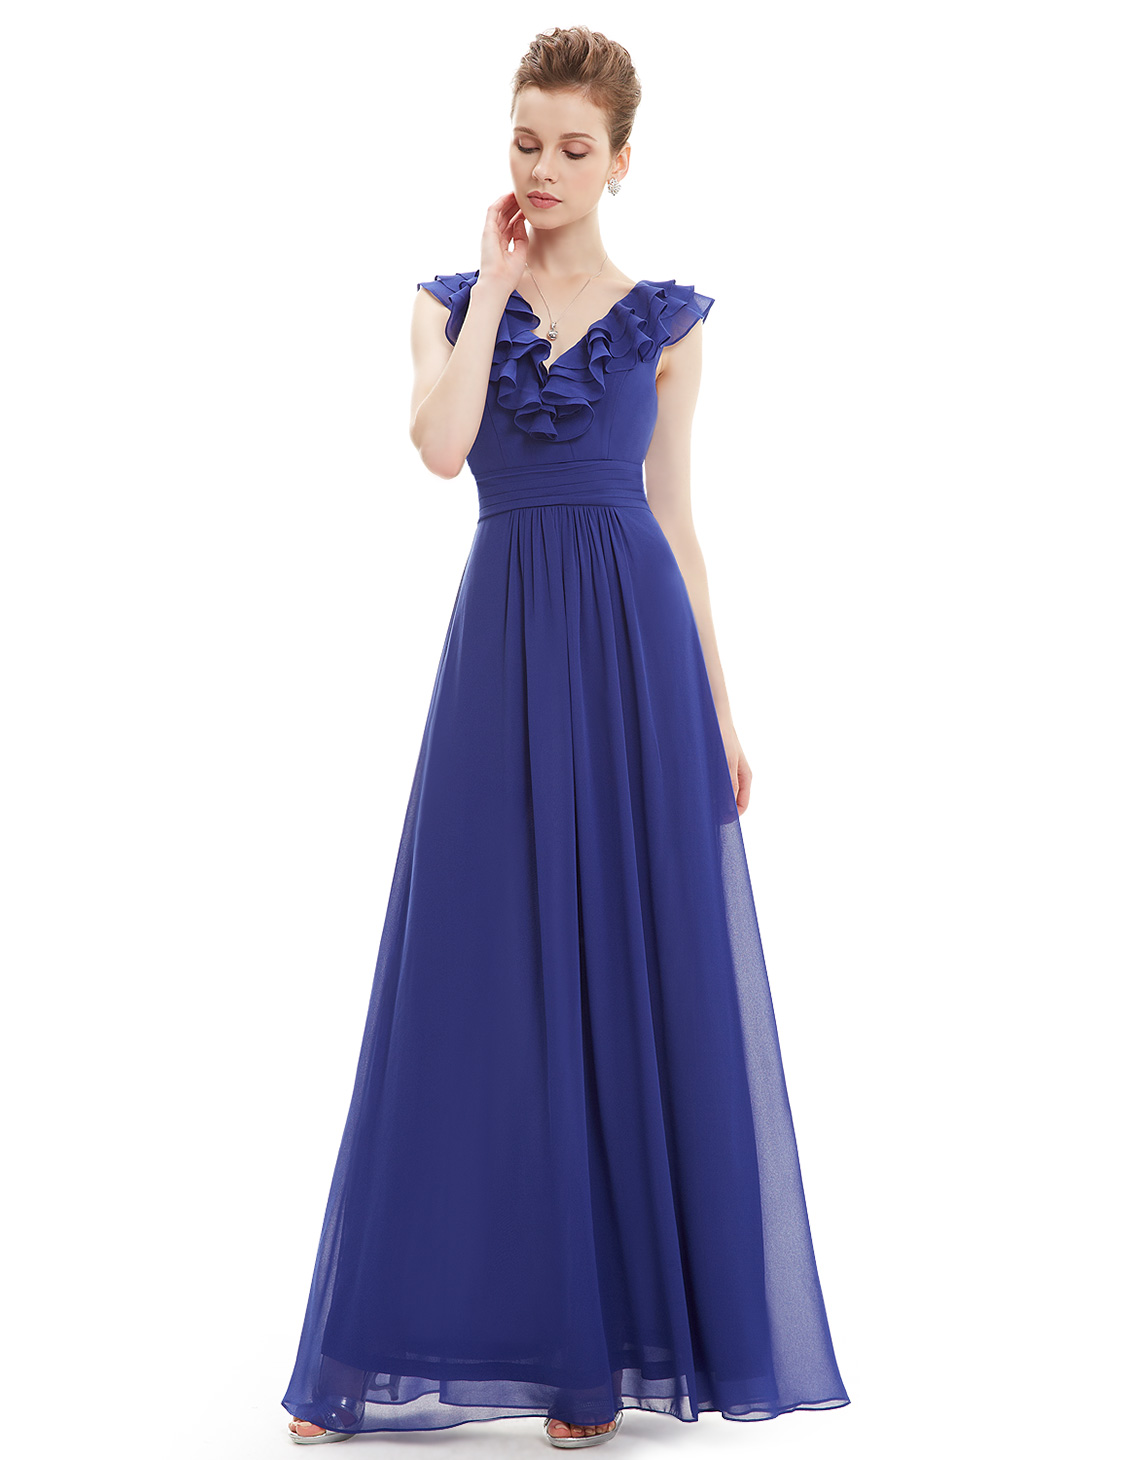 Lady Maxi Long Formal Evening Party Dresses Cocktail Prom Gown 08500 ...